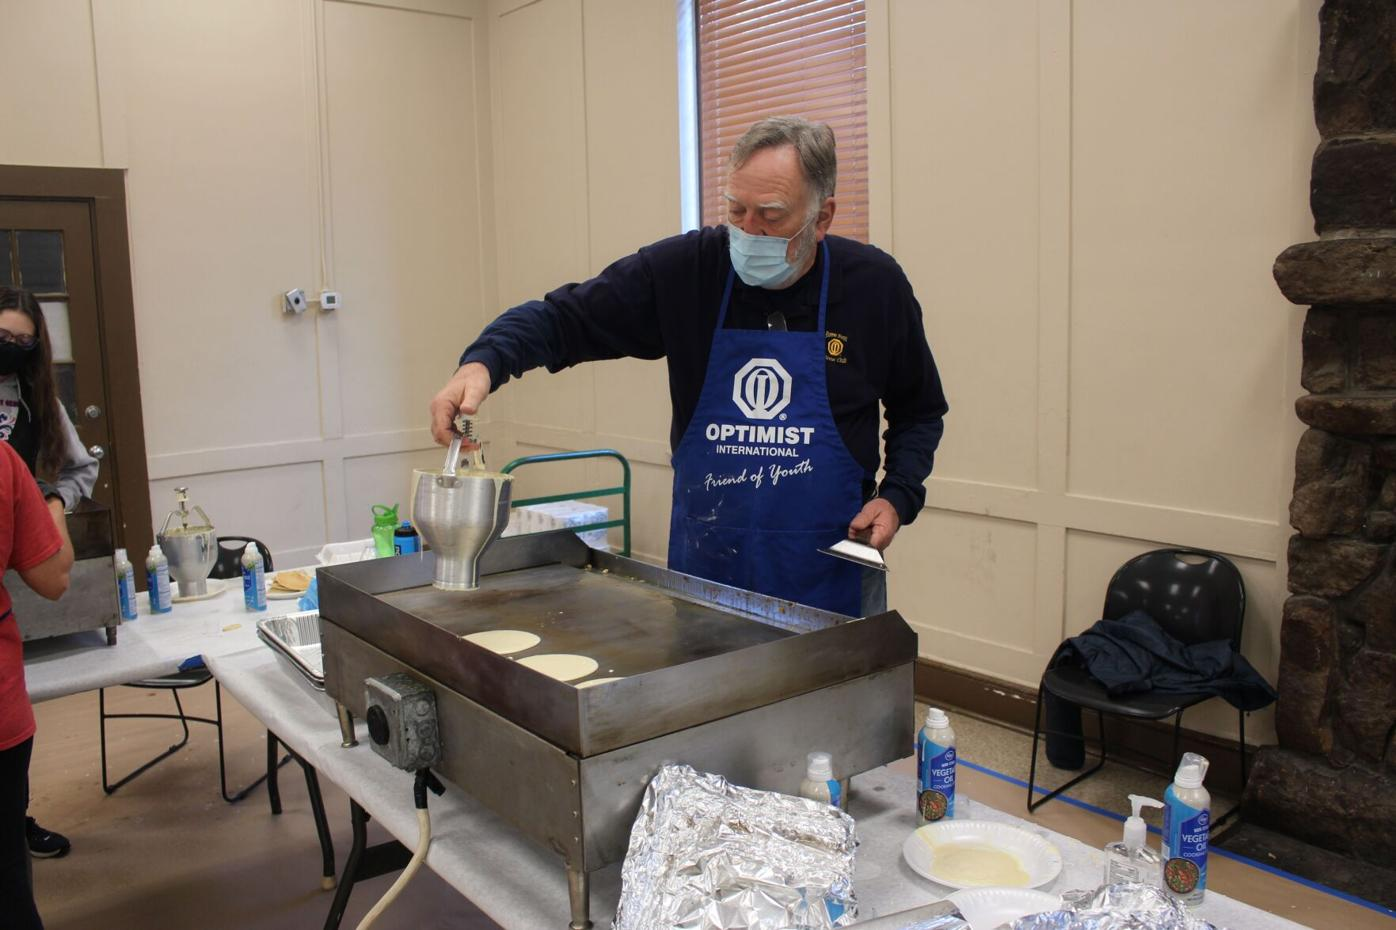 Optimist Club sees good turnout for drive-thru only pancake breakfast